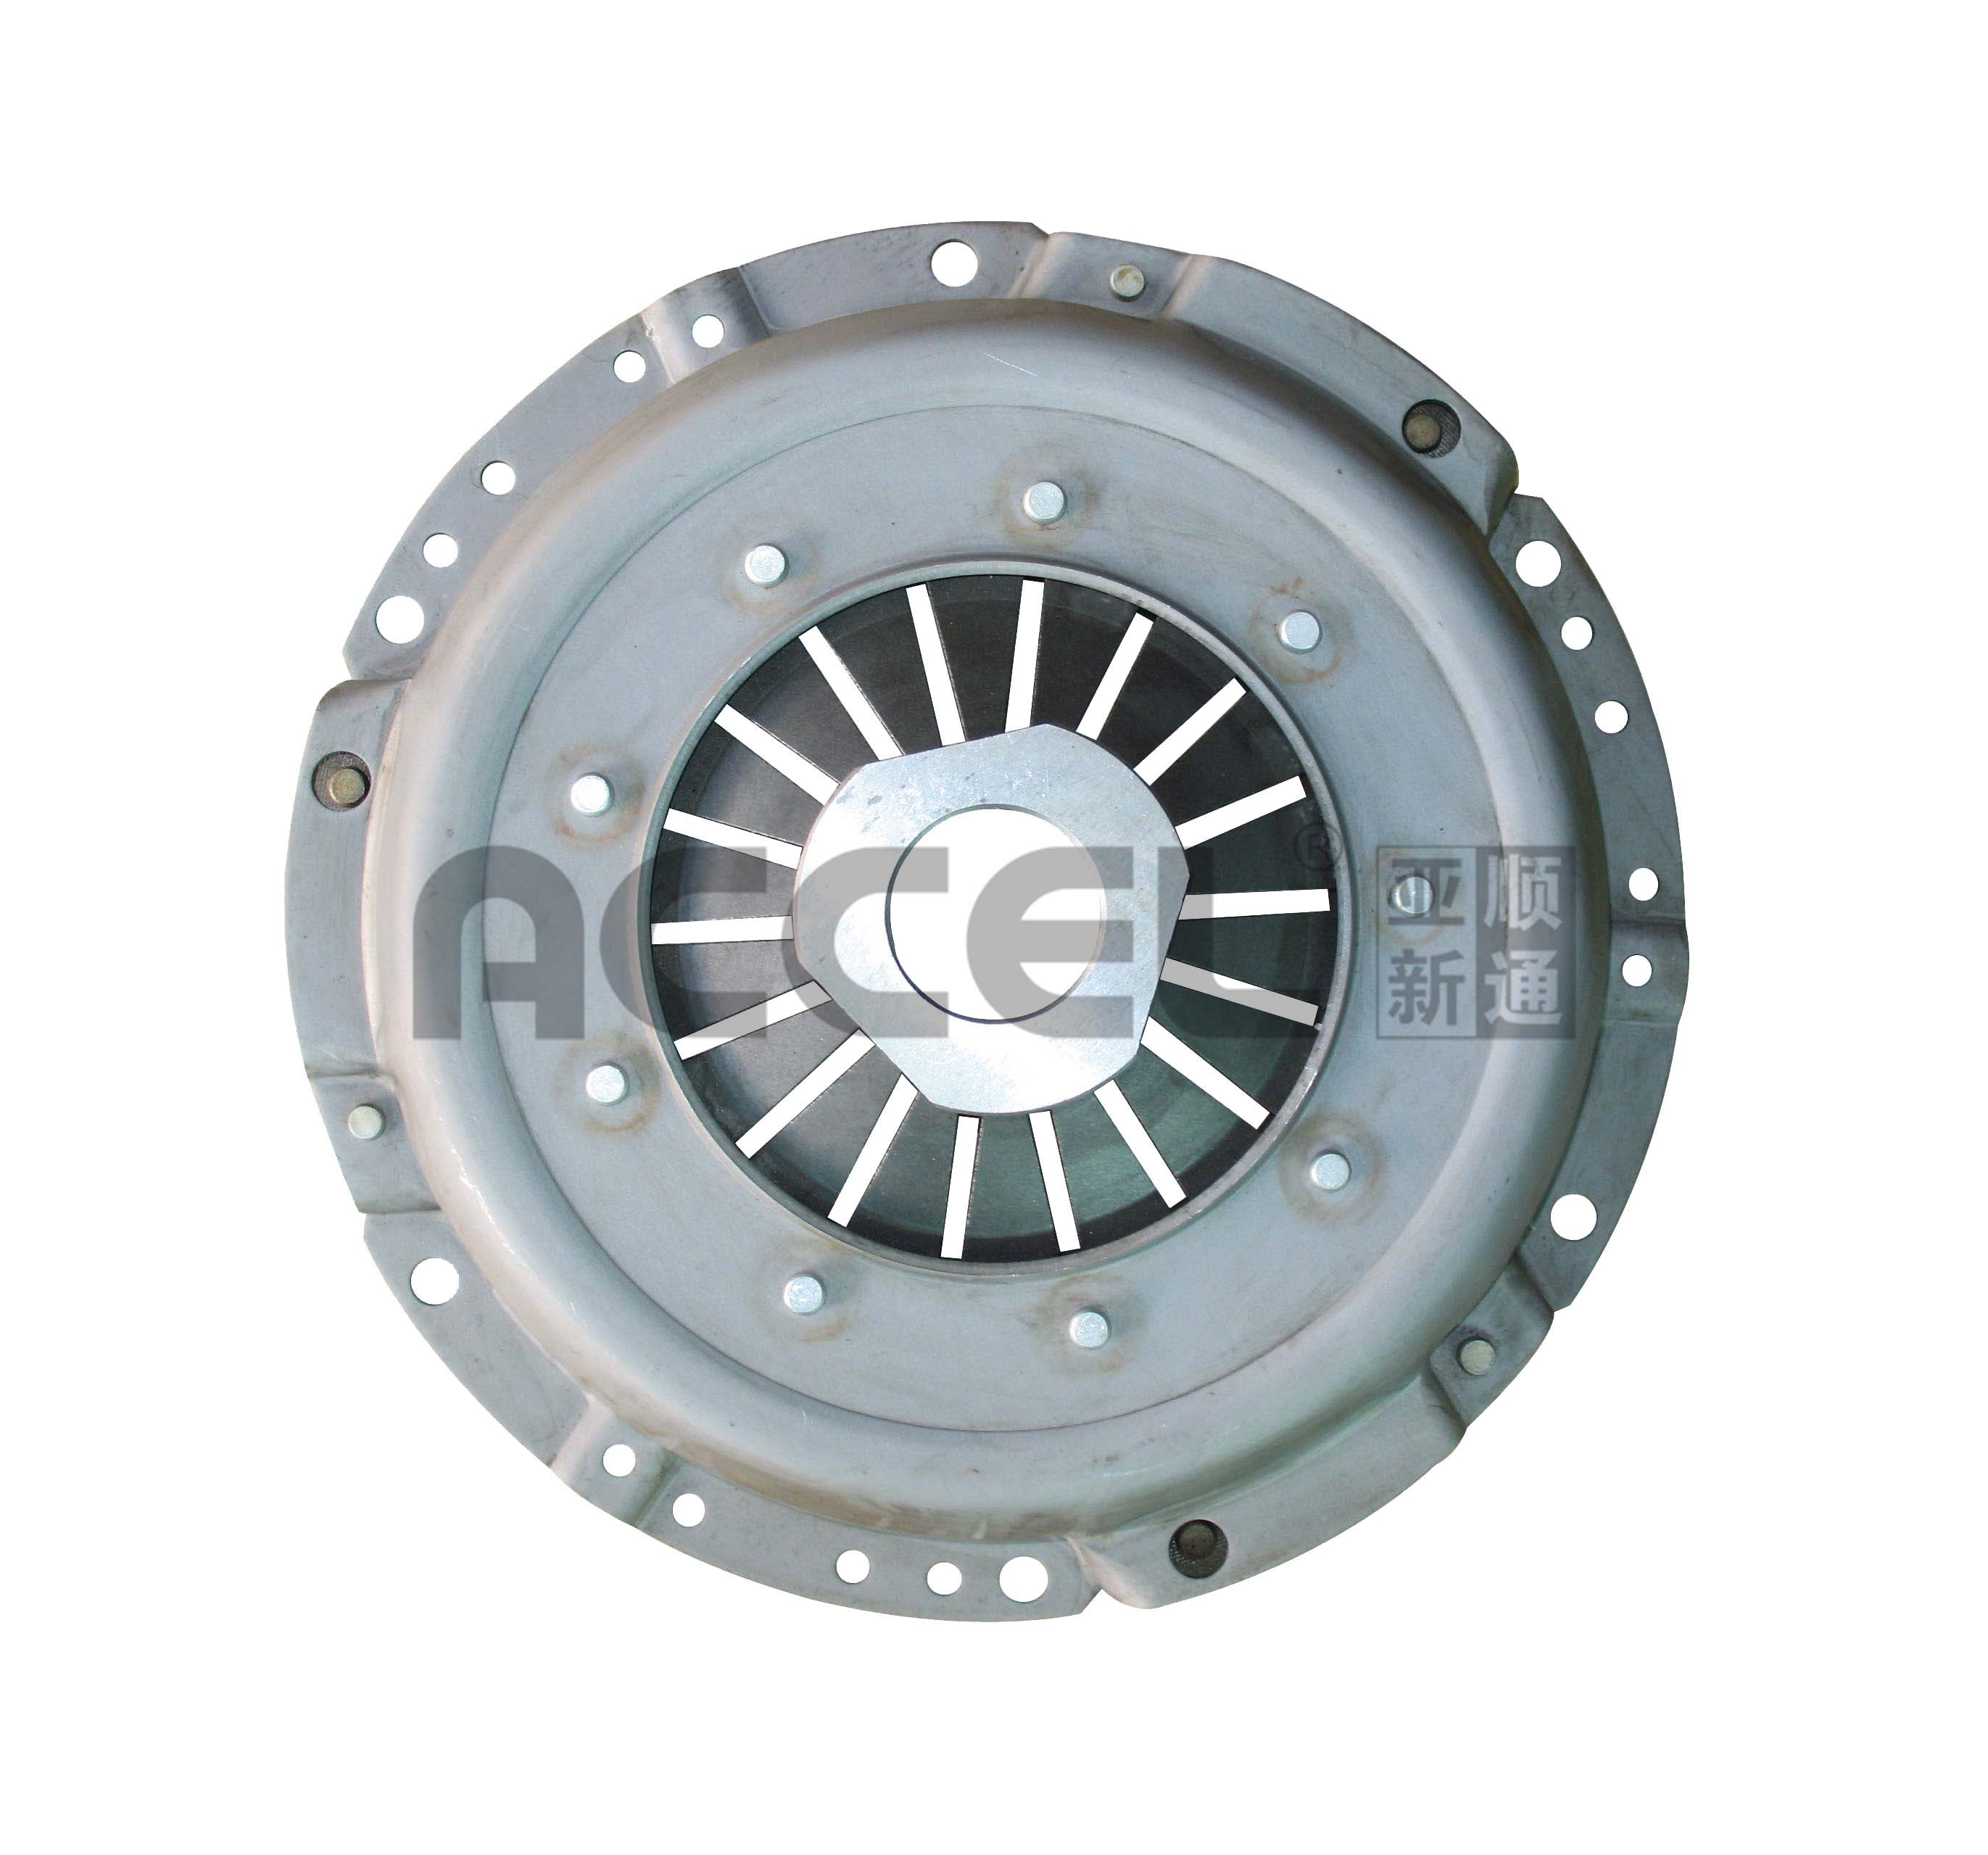 Clutch Cover/OE:003 250 0204/215*145*251/CBZ-002/MERCEDES BENZ/LY188/3082 078 032/001 250 4304/1882 342 134/3600663/81.30305.0124/003 250 9004